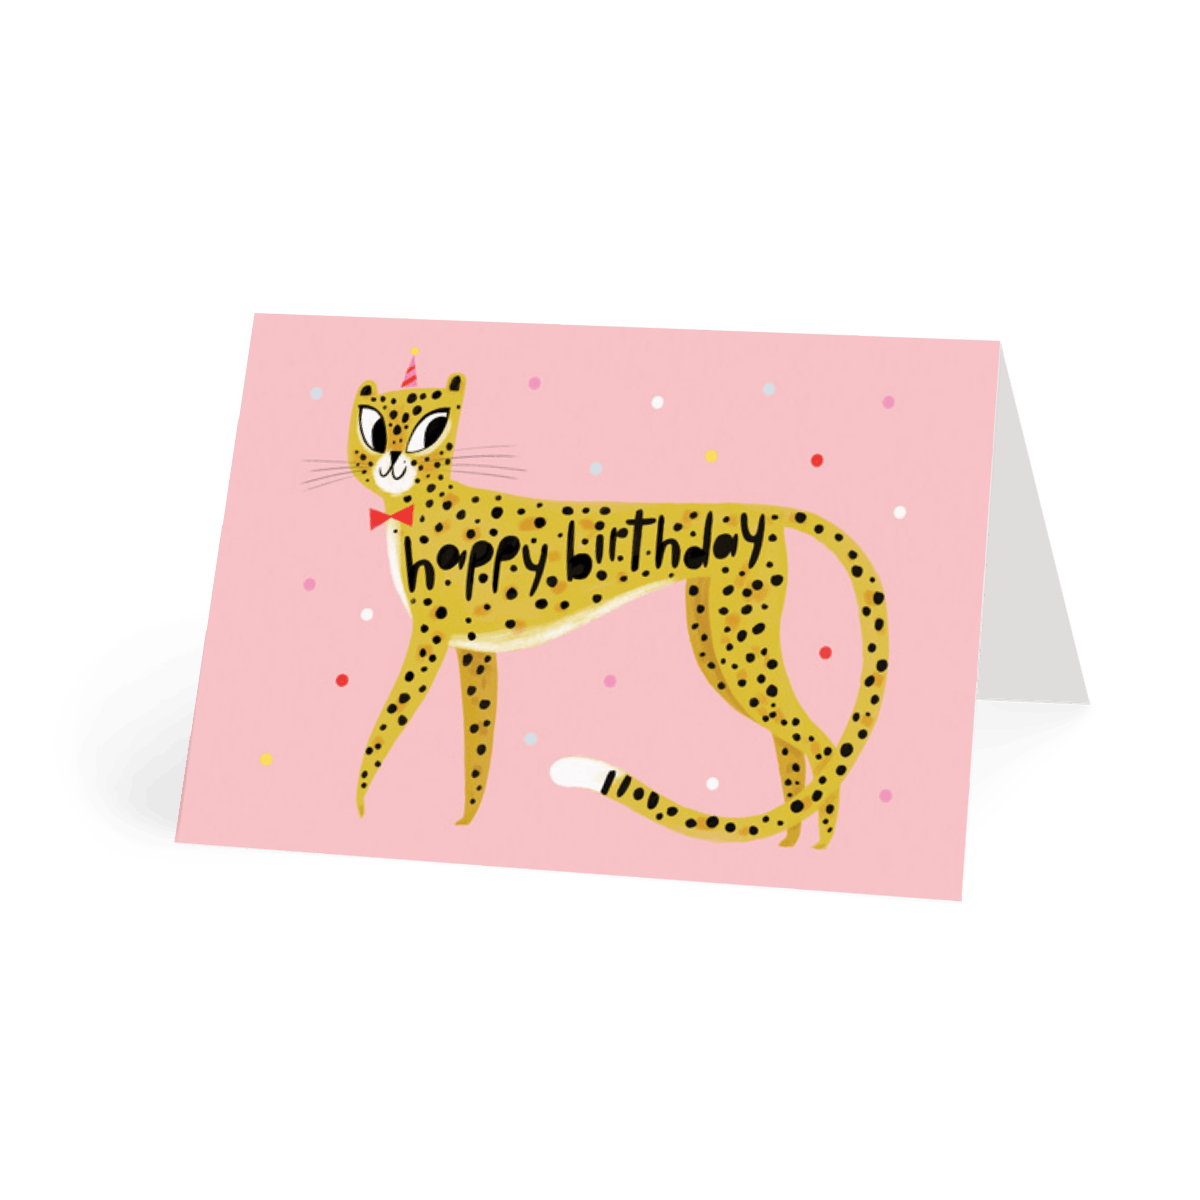 Https%3a%2f%2fwww.papier.com%2fproduct image%2f4854%2f14%2fbirthday cheetah 1258 front 1457524702.png?ixlib=rb 1.1